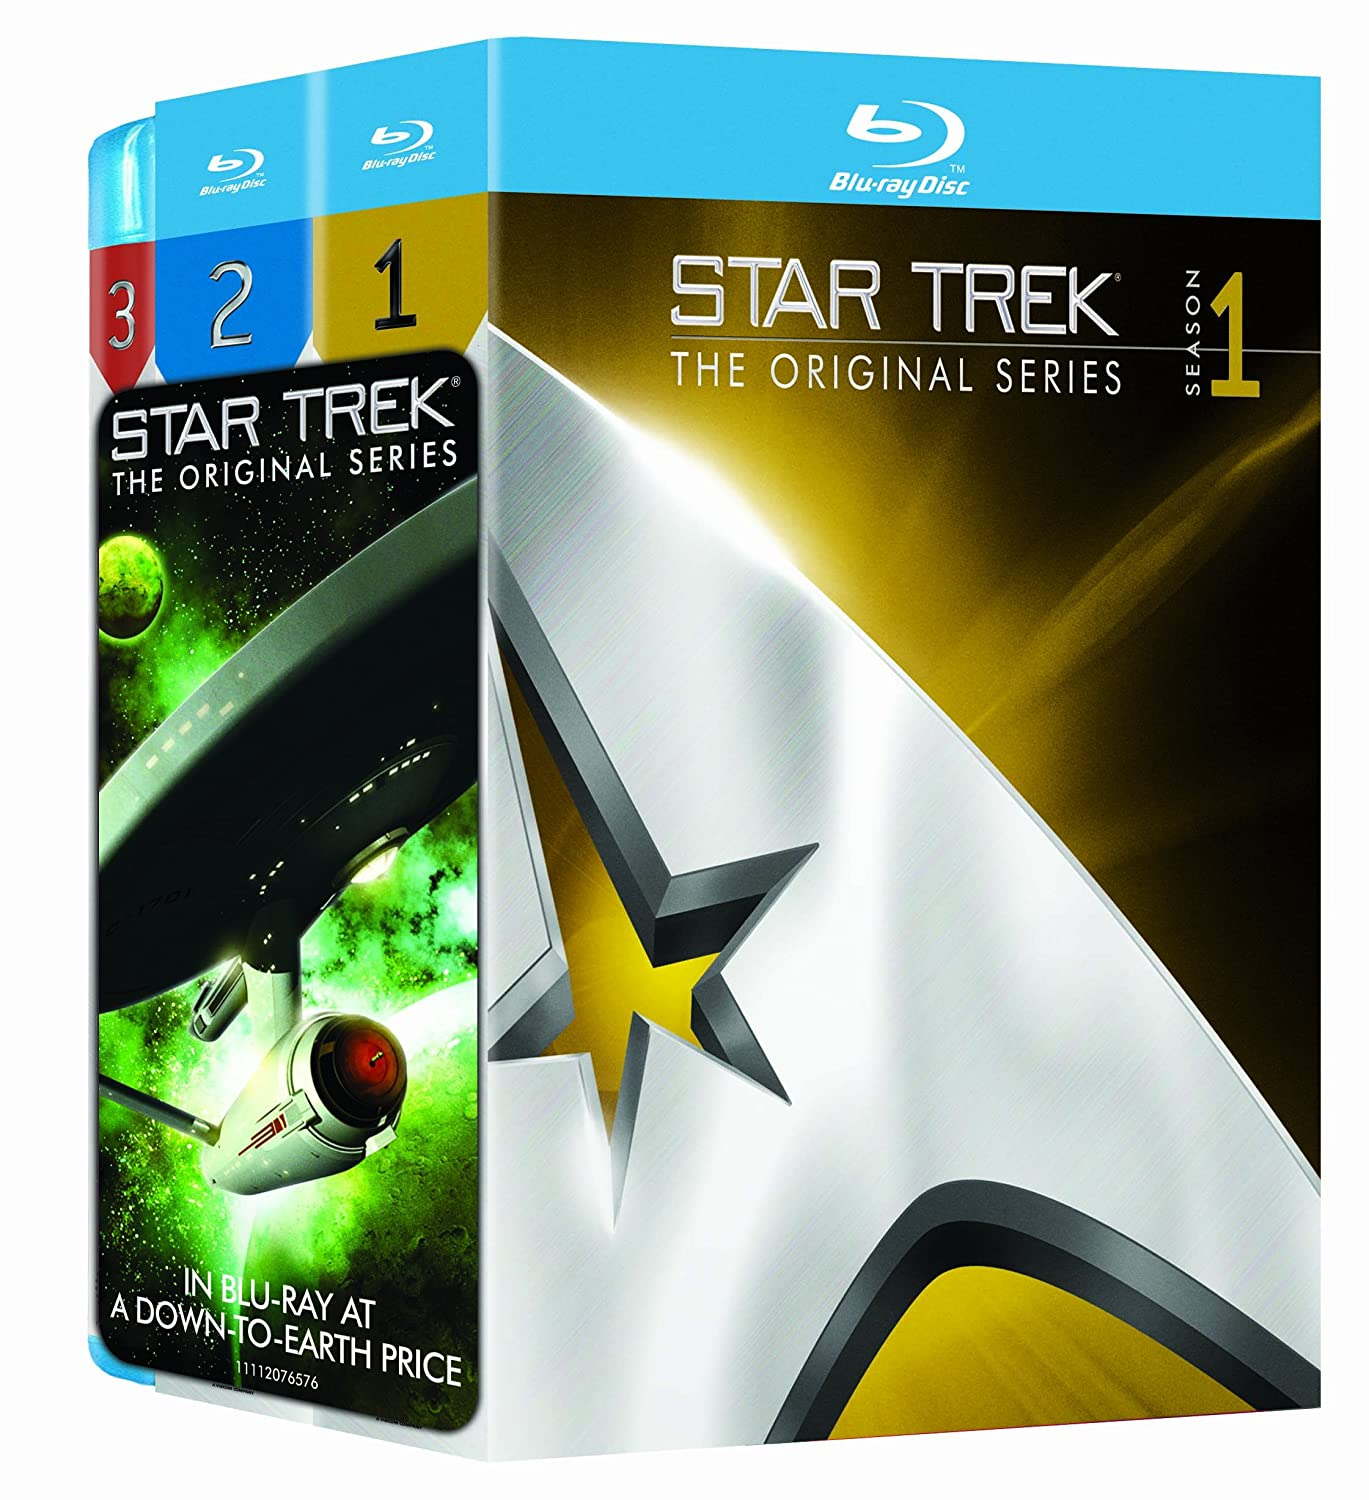 Star Trek: Original Series - Three Season Pack Reino Unido Blu-ray: Amazon.es: Cine y Series TV